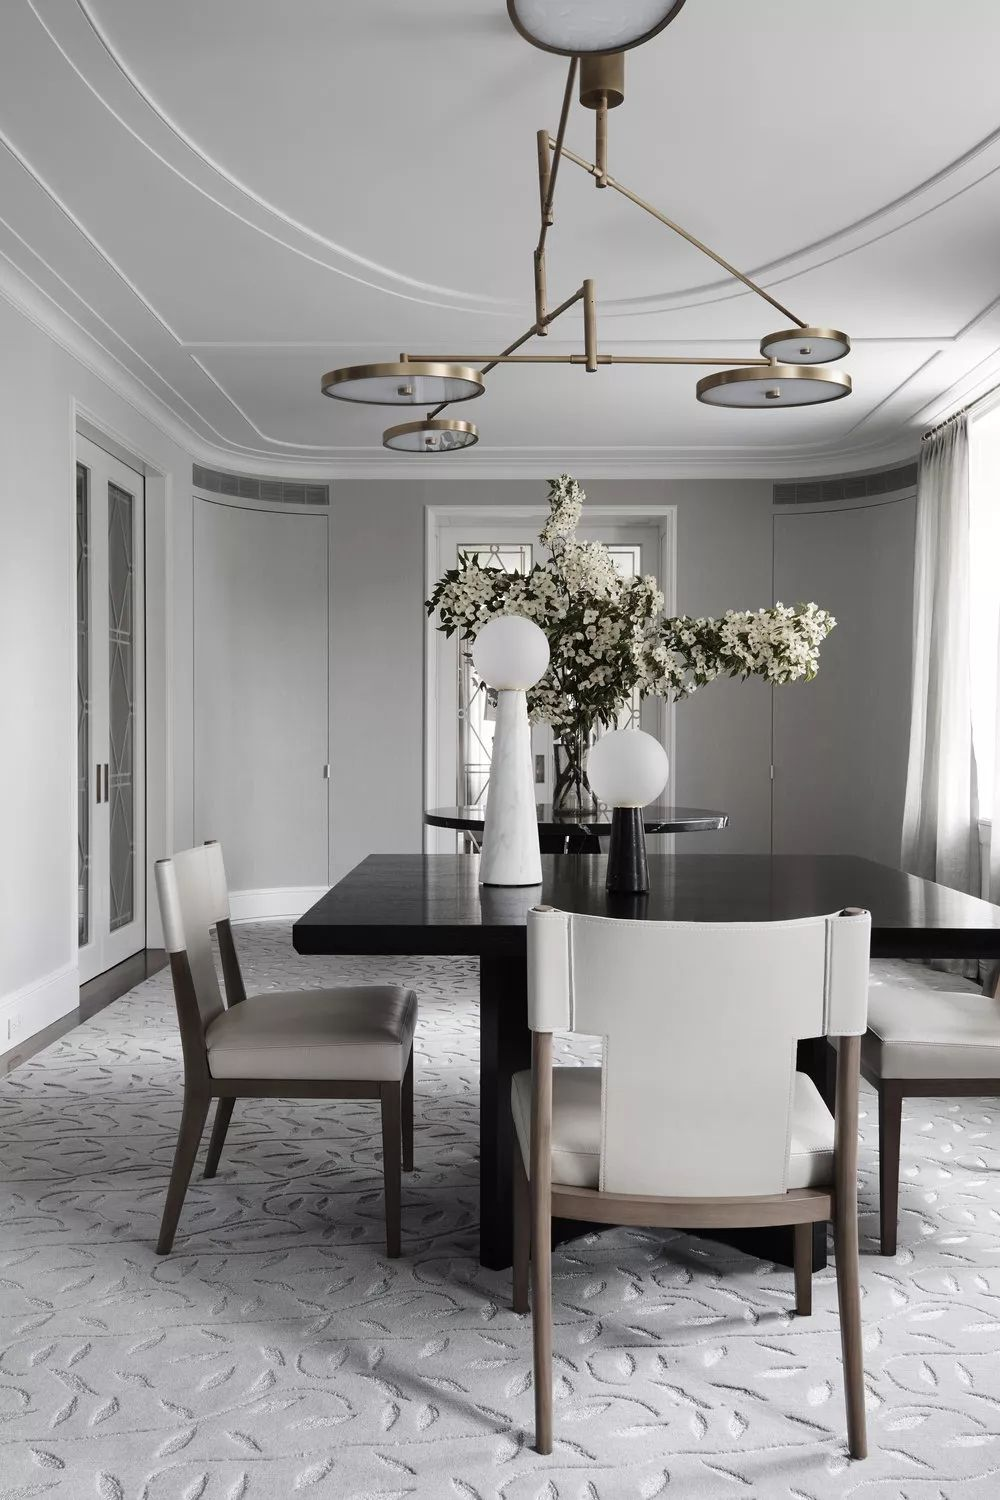 Modern ceiling light appears to be a warm brass tone interiors